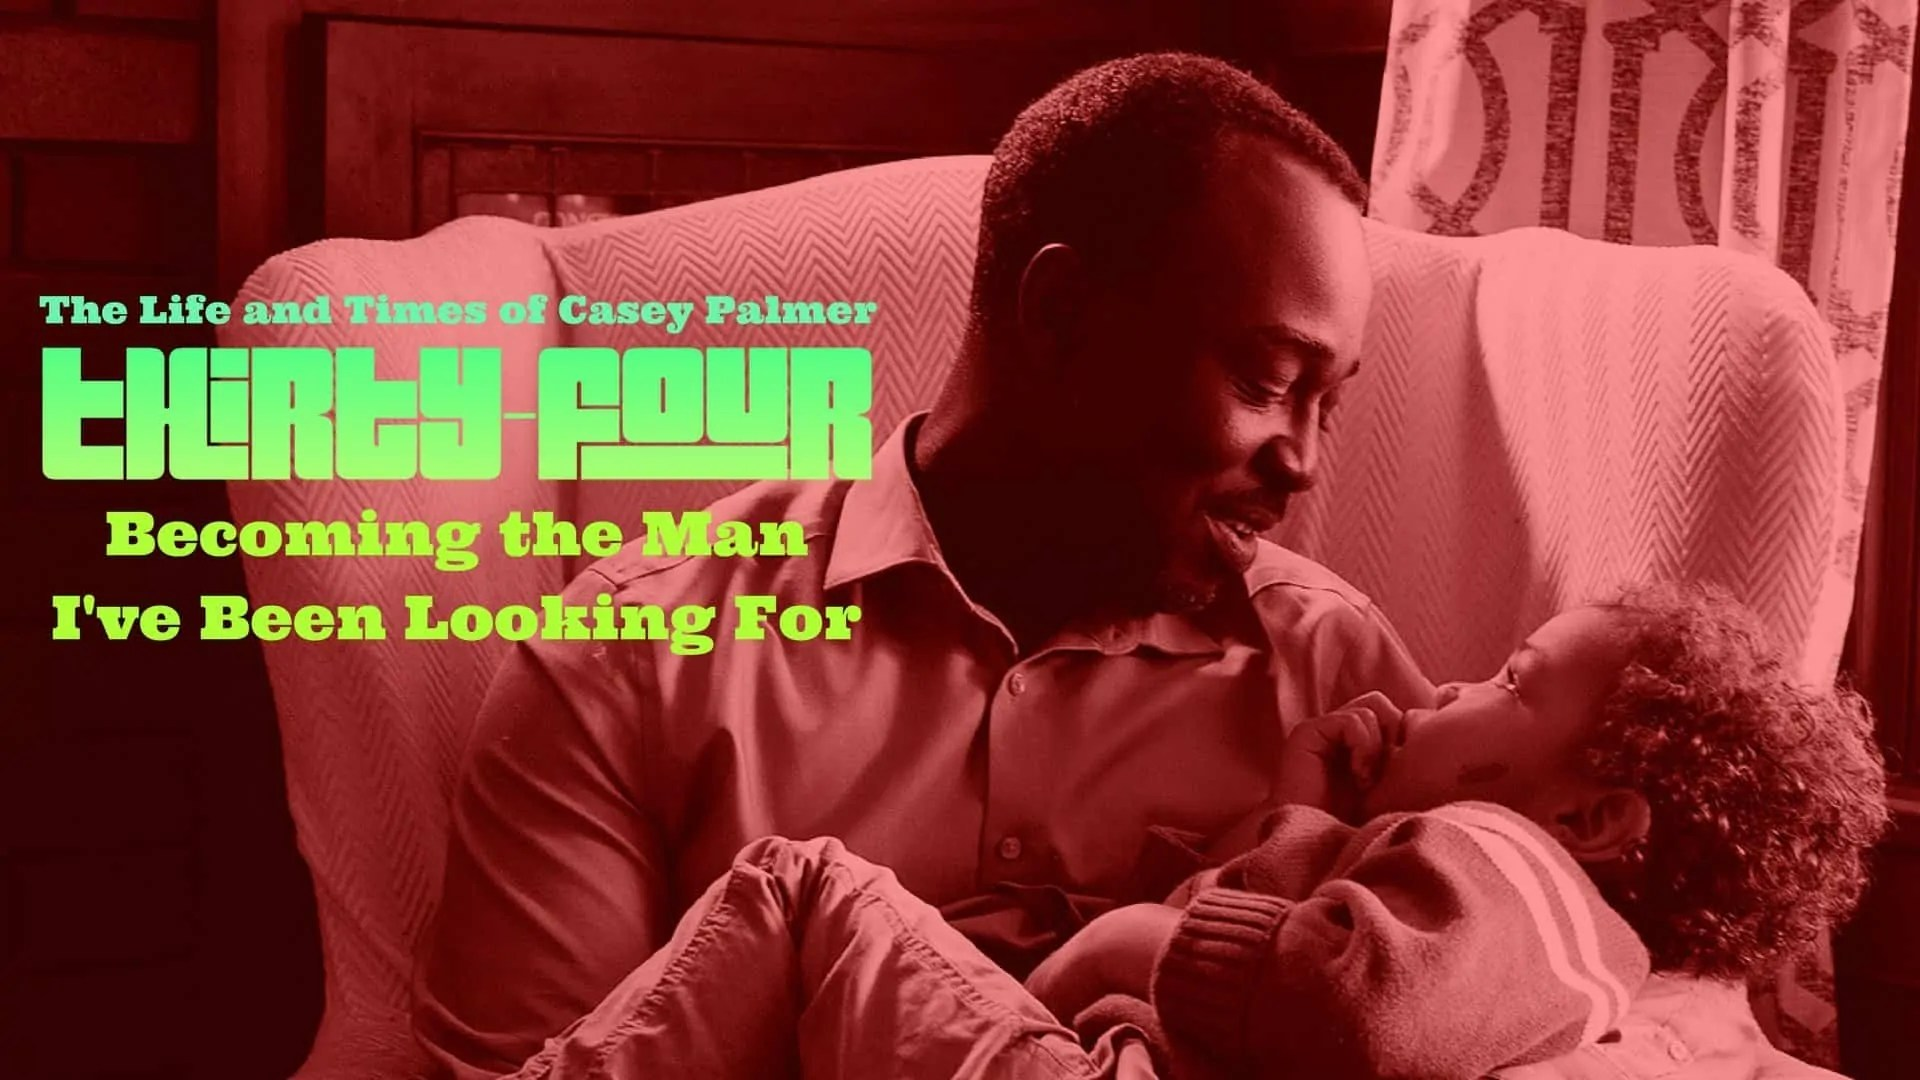 Thirty-Four- Becoming the Man I've Been Looking For (Featured Image)